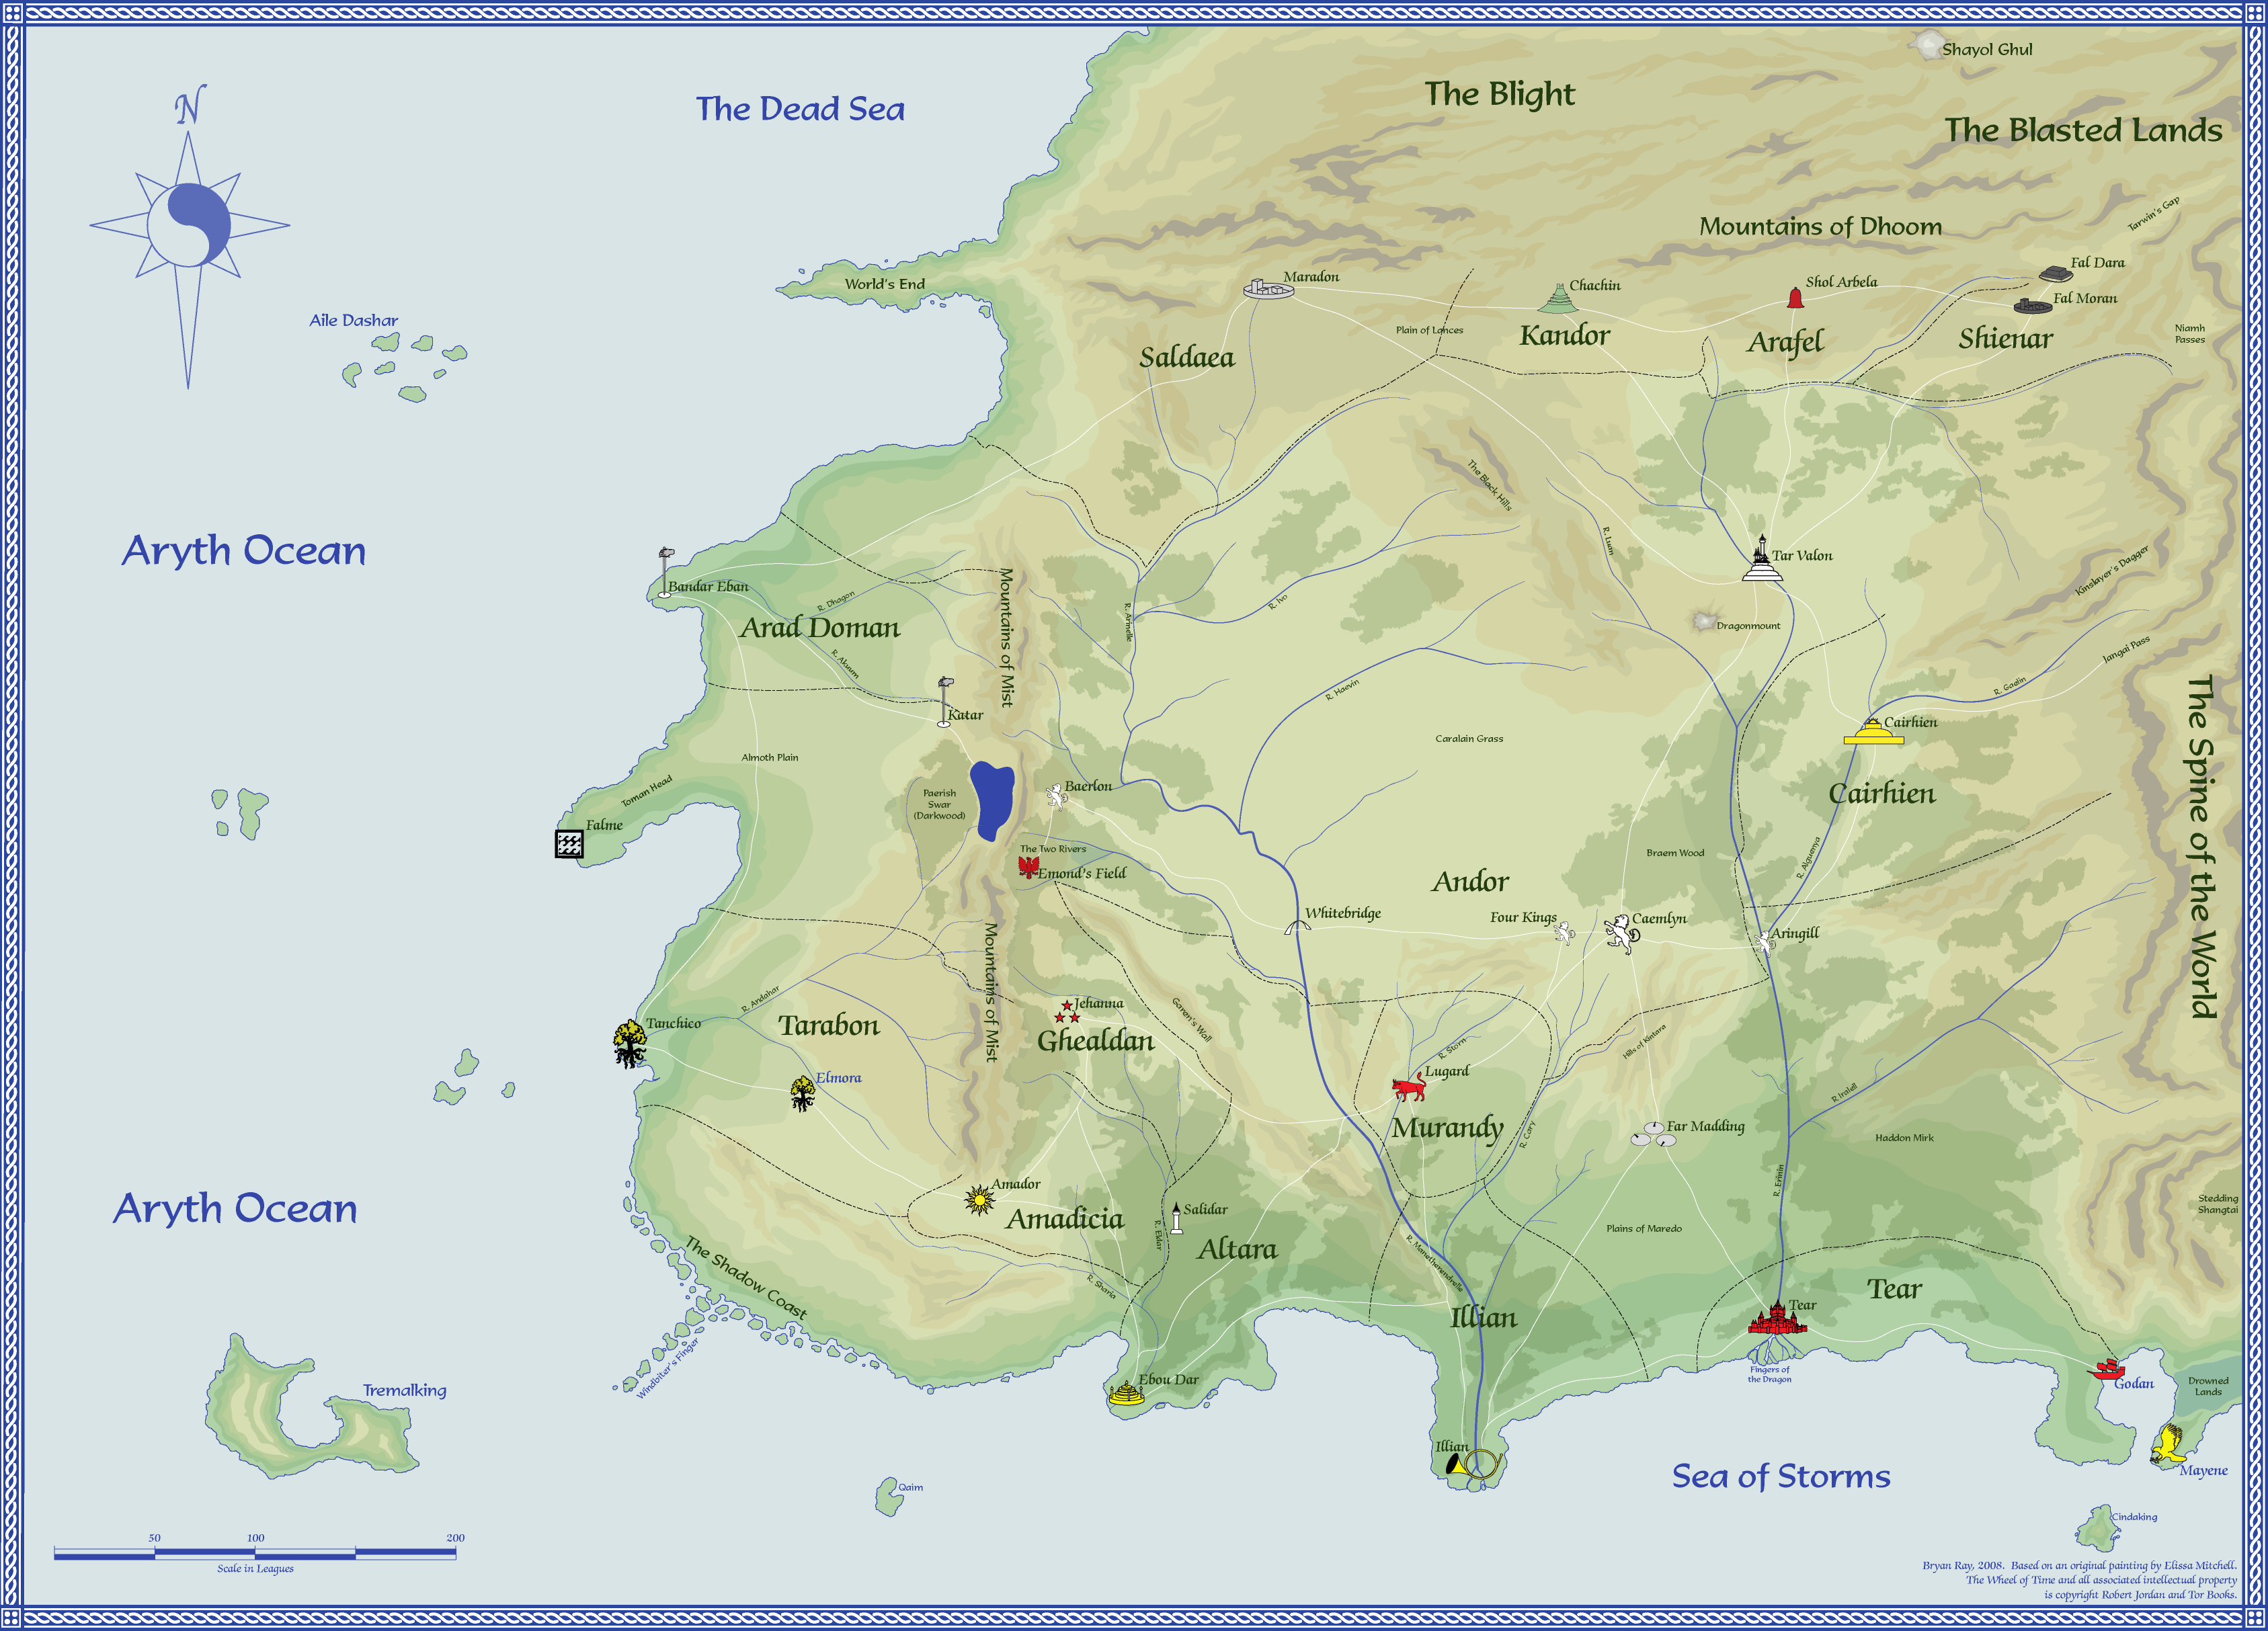 Robert jordans the wheel of time map by randland via cartographer robert jordans the wheel of time map by randland via cartographer guild gumiabroncs